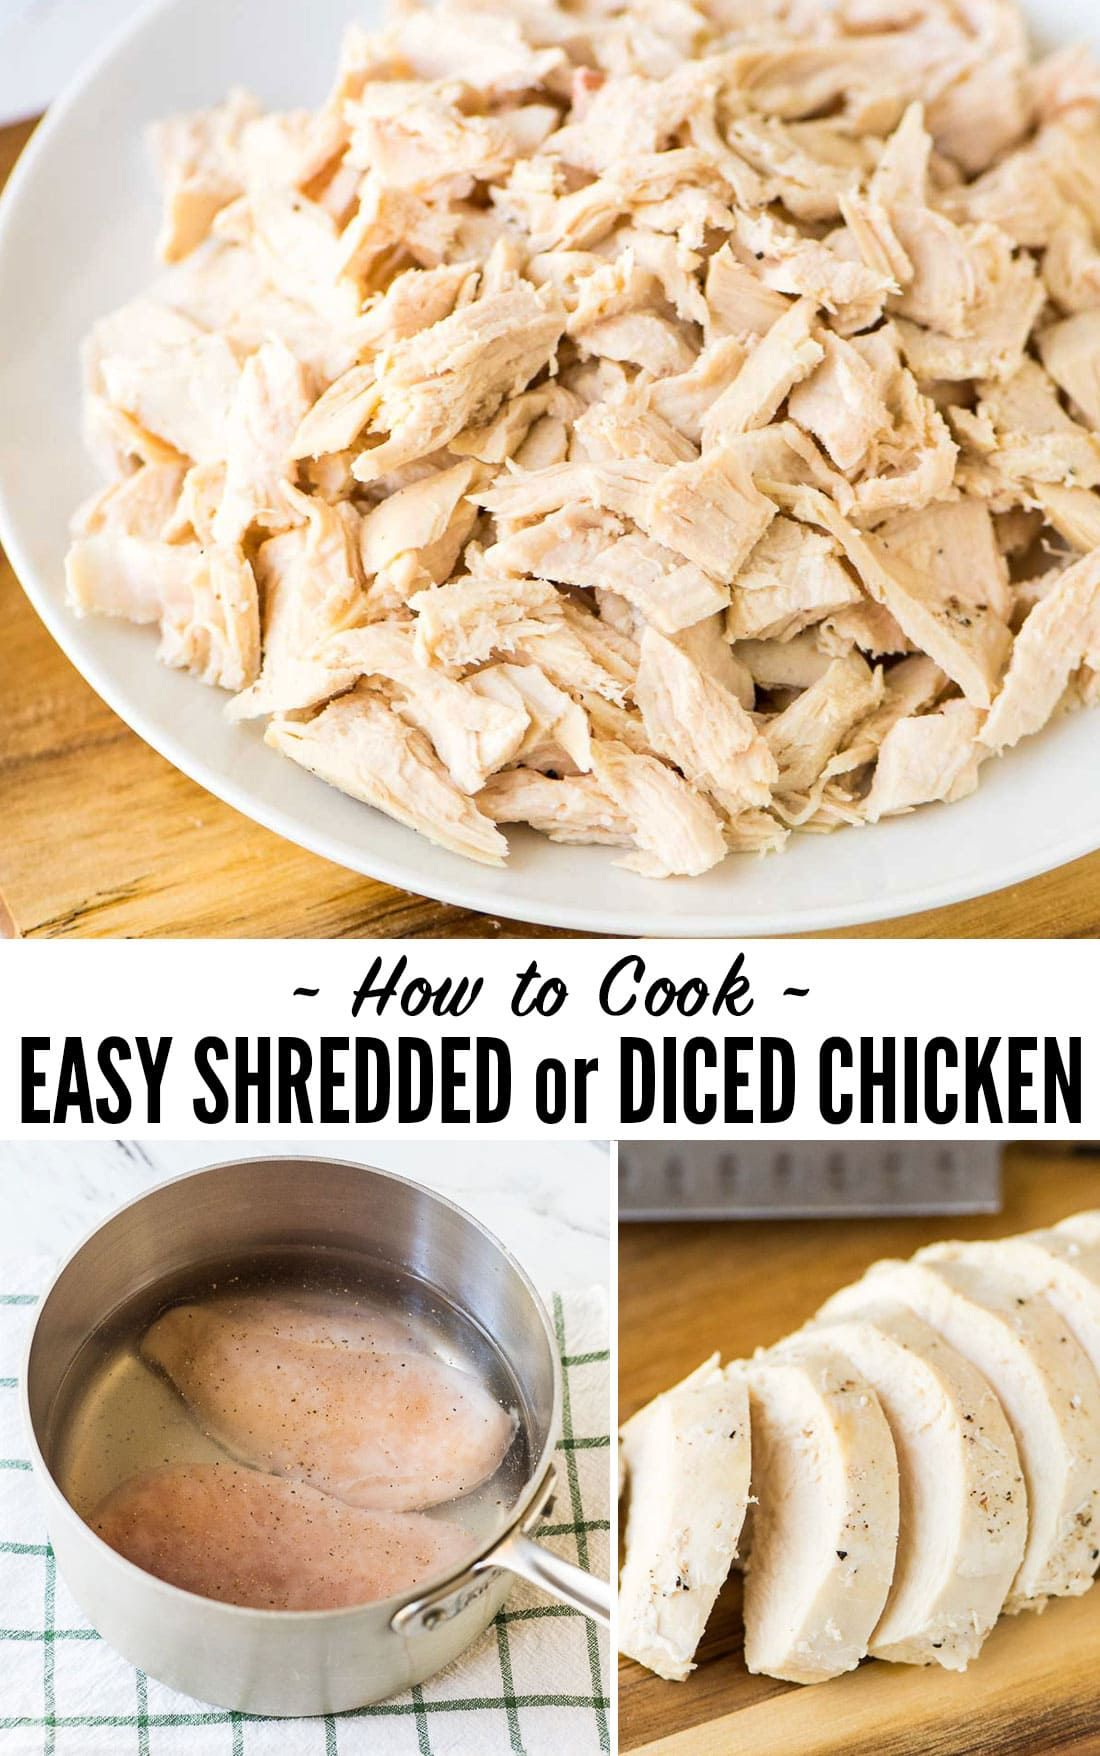 How To Make Shredded Chicken Use This Easy Step By Step Method Any Time A Recipe Calls For Diced Or Shredded Chicken Pe Recipes Cooking Make Shredded Chicken